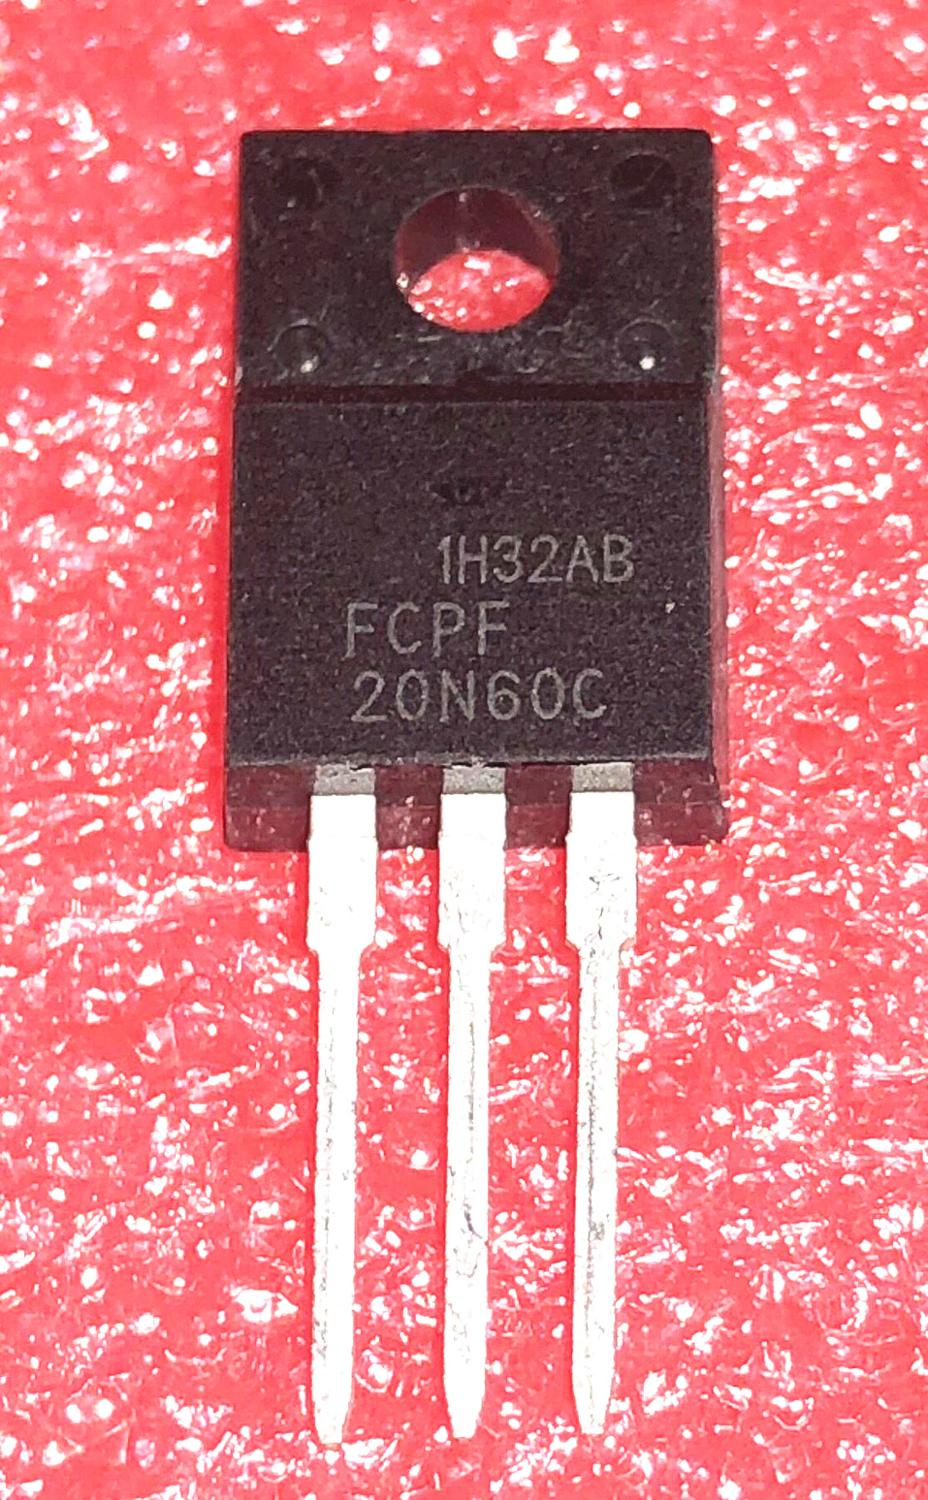 10pcs/lot 20N60C3 FCPF20N60 20N60 P20NM60FP Imports Disassemble LCD TO-220F In Stock